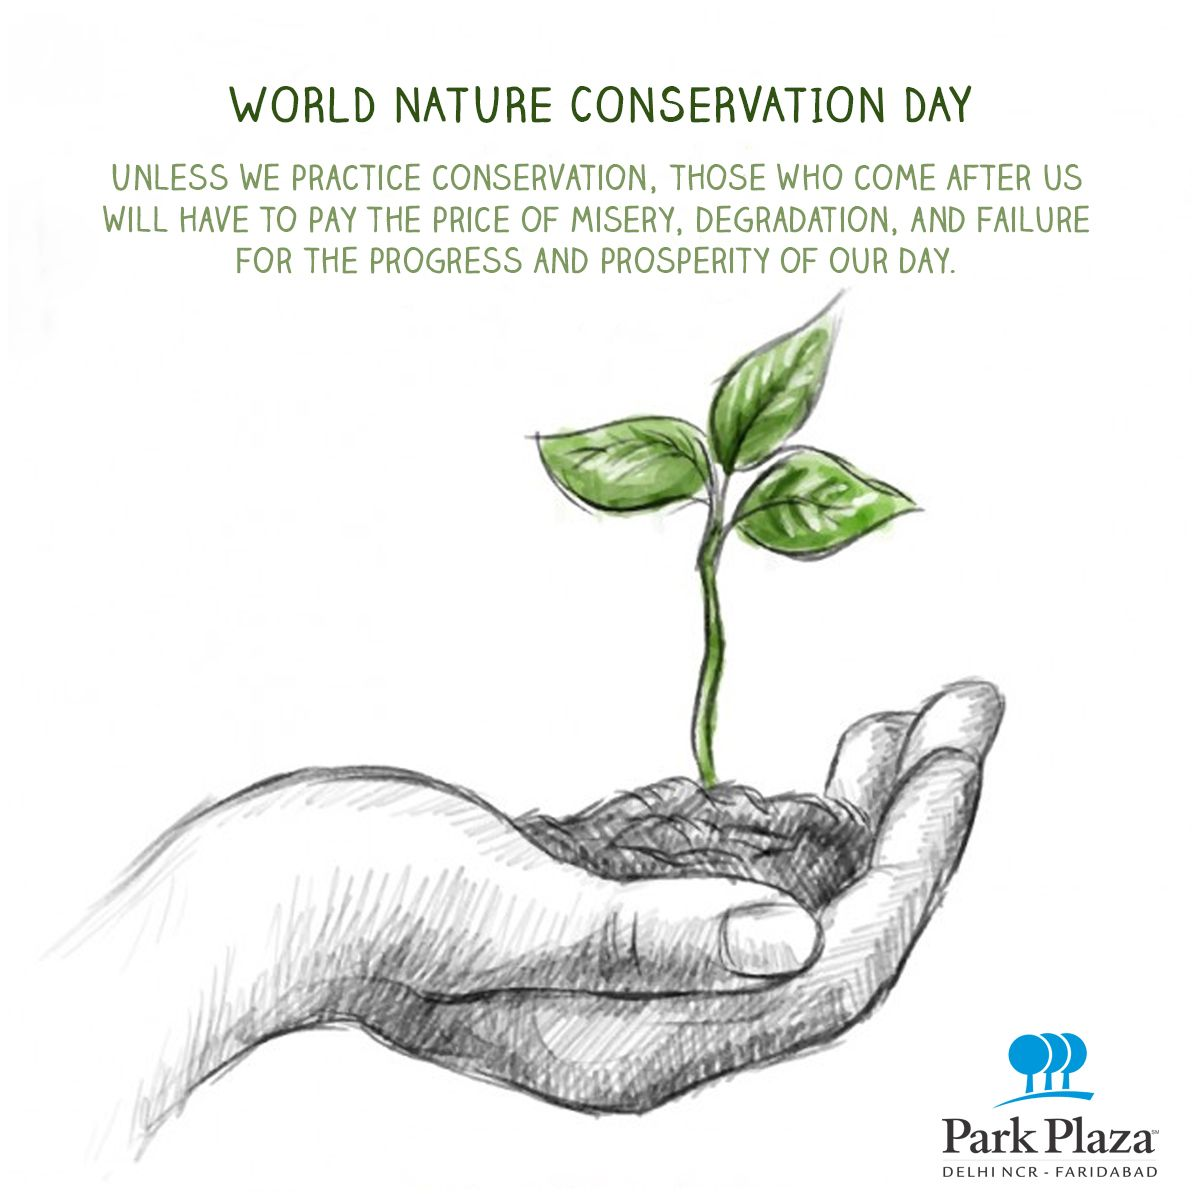 World Nature Conservation Day Is Observed On 28th July All Over The World With The Objective Of Increasing Awareness About And Protecting The Natural Resources